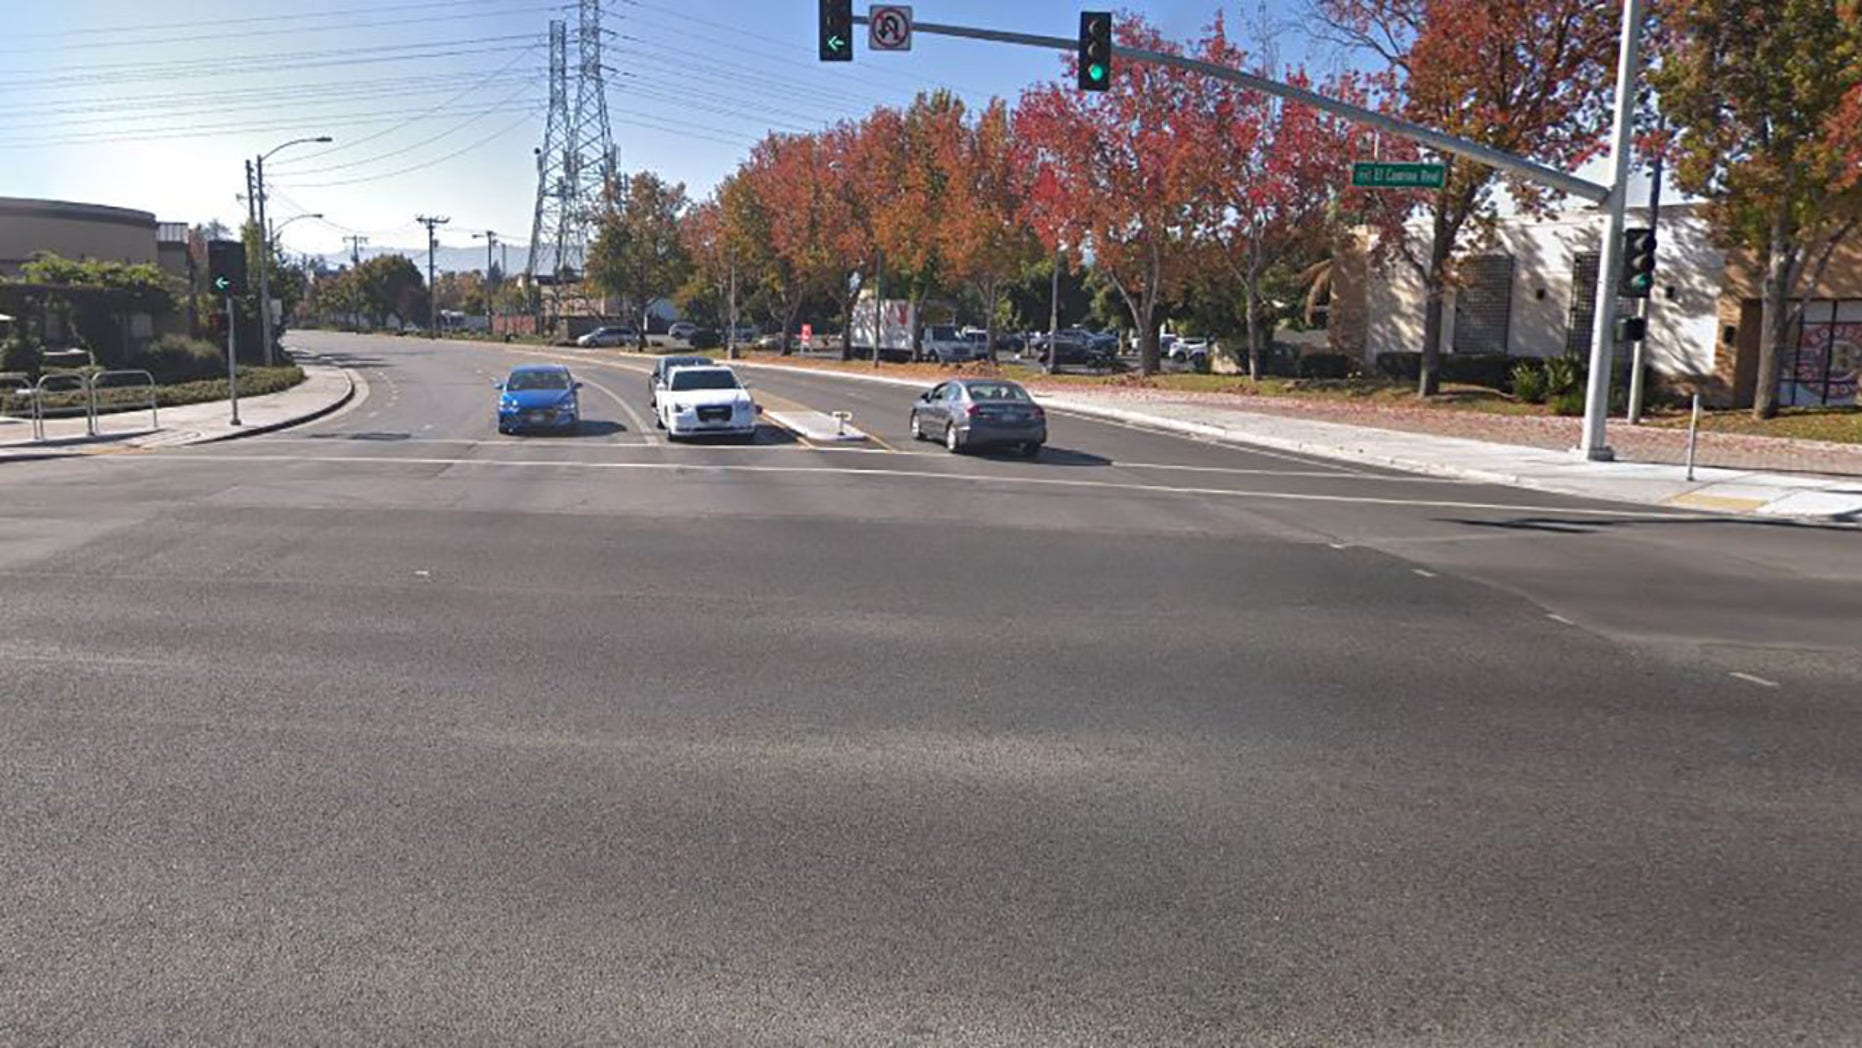 The crash happened at the intersection of El Camino and Sunnyvale Saratoga Road in Sunnyvale, California.